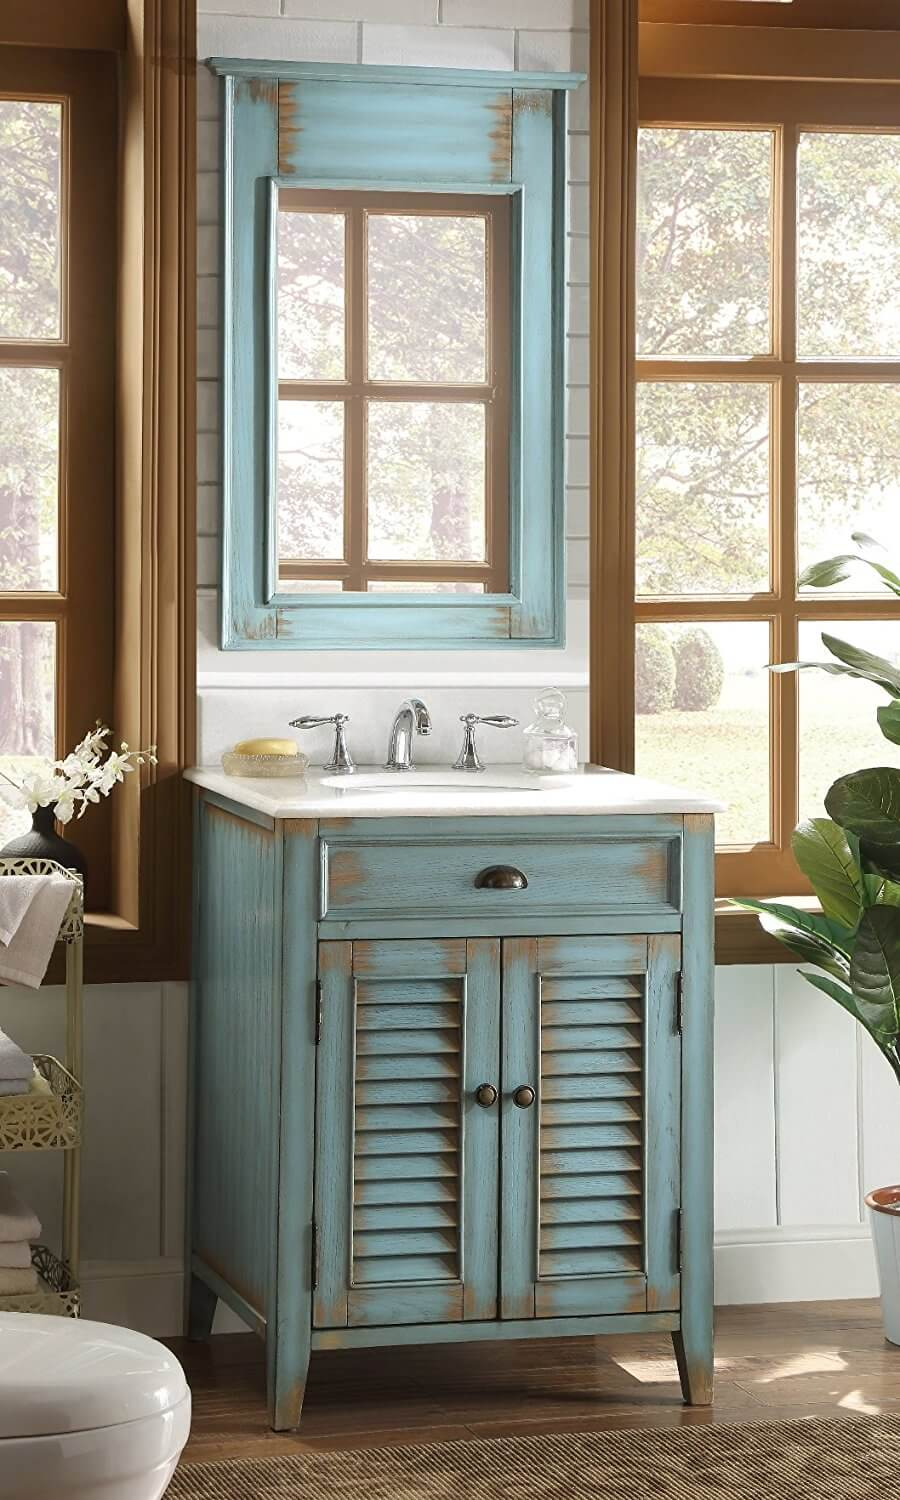 Large Windows and a Rustic Painted Vanity